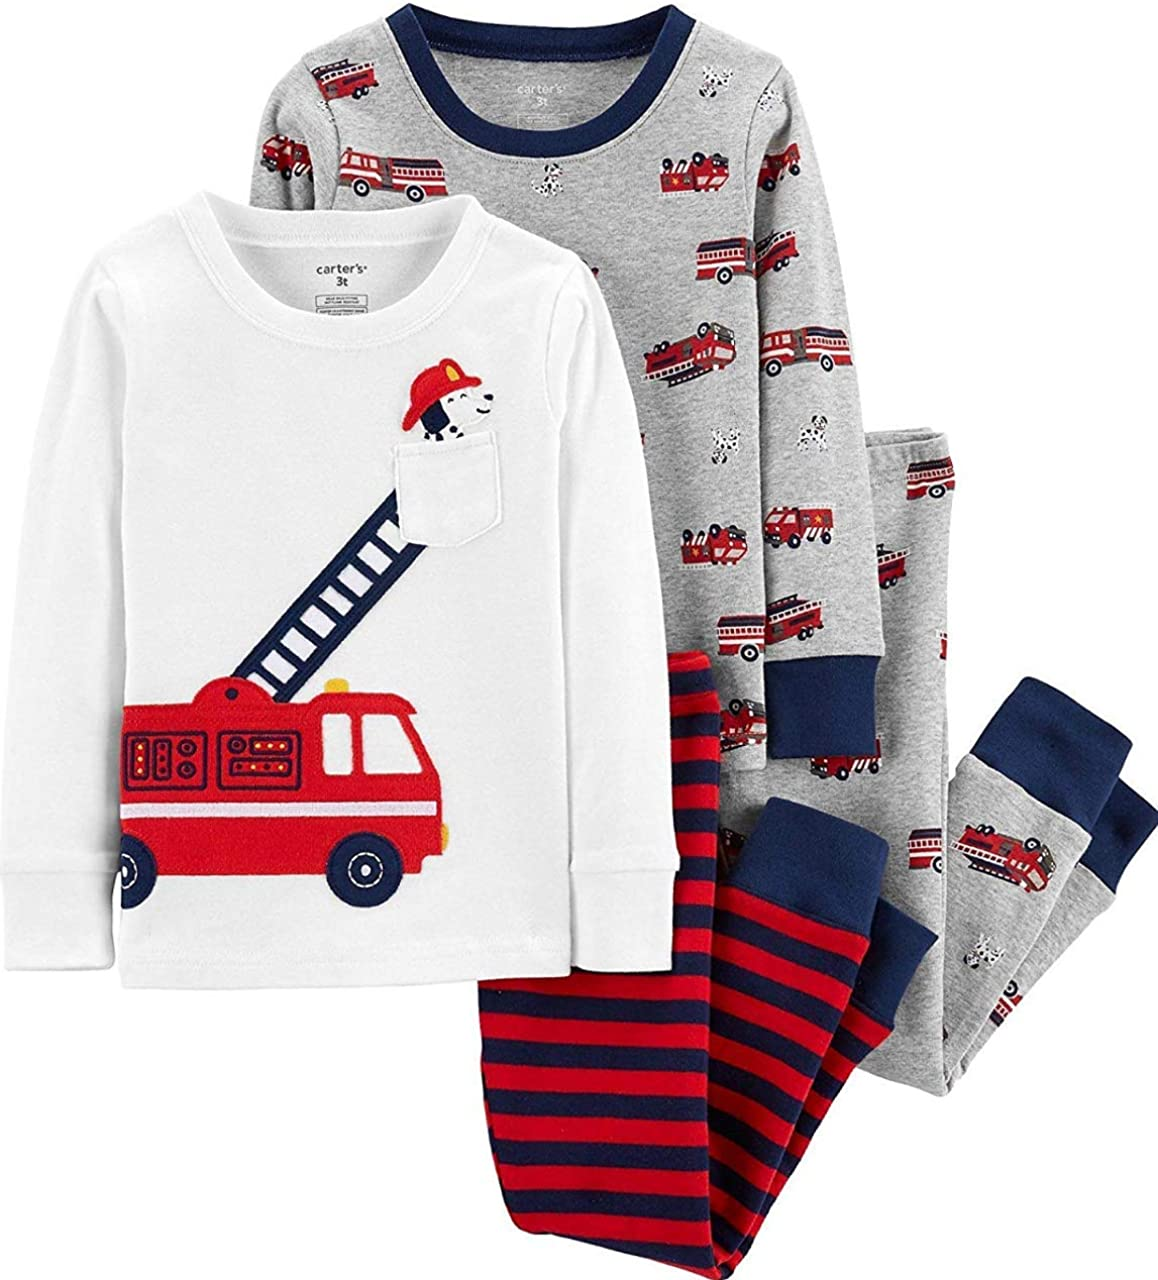 Carters 4 Piece Bear PJ Set (9 Months, Firetruck) (9, Red): Amazon.es: Ropa y accesorios